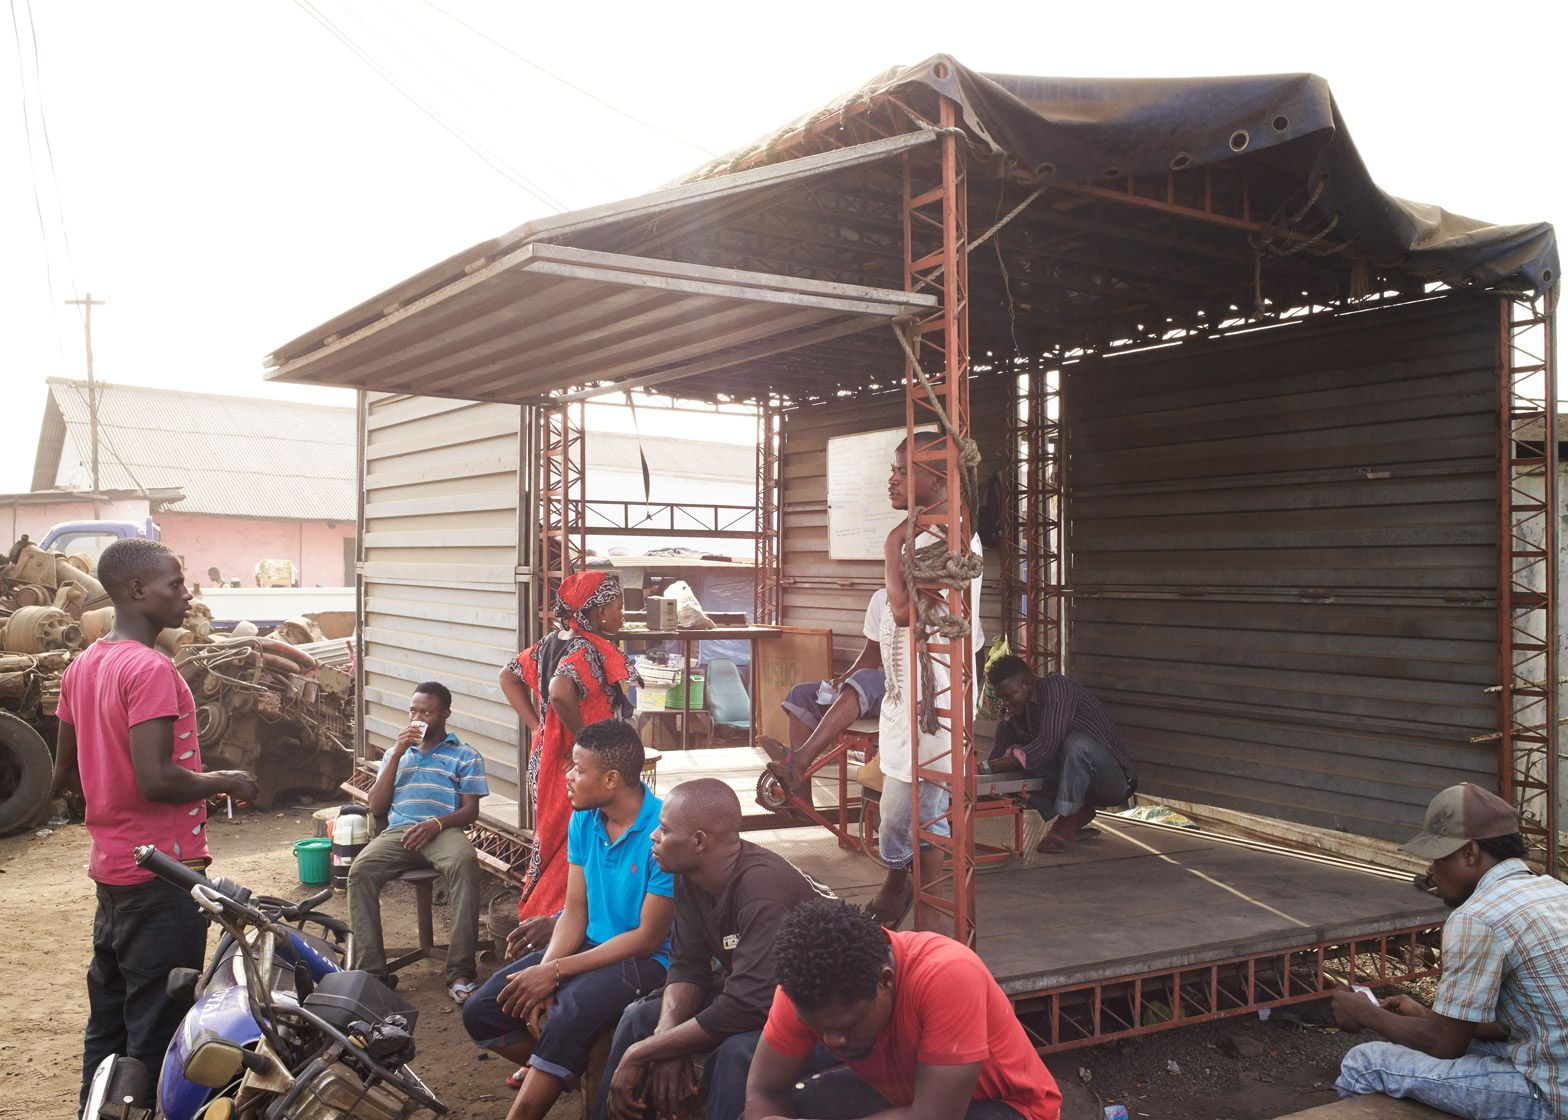 amp-spacecraft-makerspace-mobile-structures-agbogbloshie-ghana-worlds-largest-electrical-waste-dump-africa-potential-micro-industry-platforms-low-design-office_dezeen_1568_24.jpg